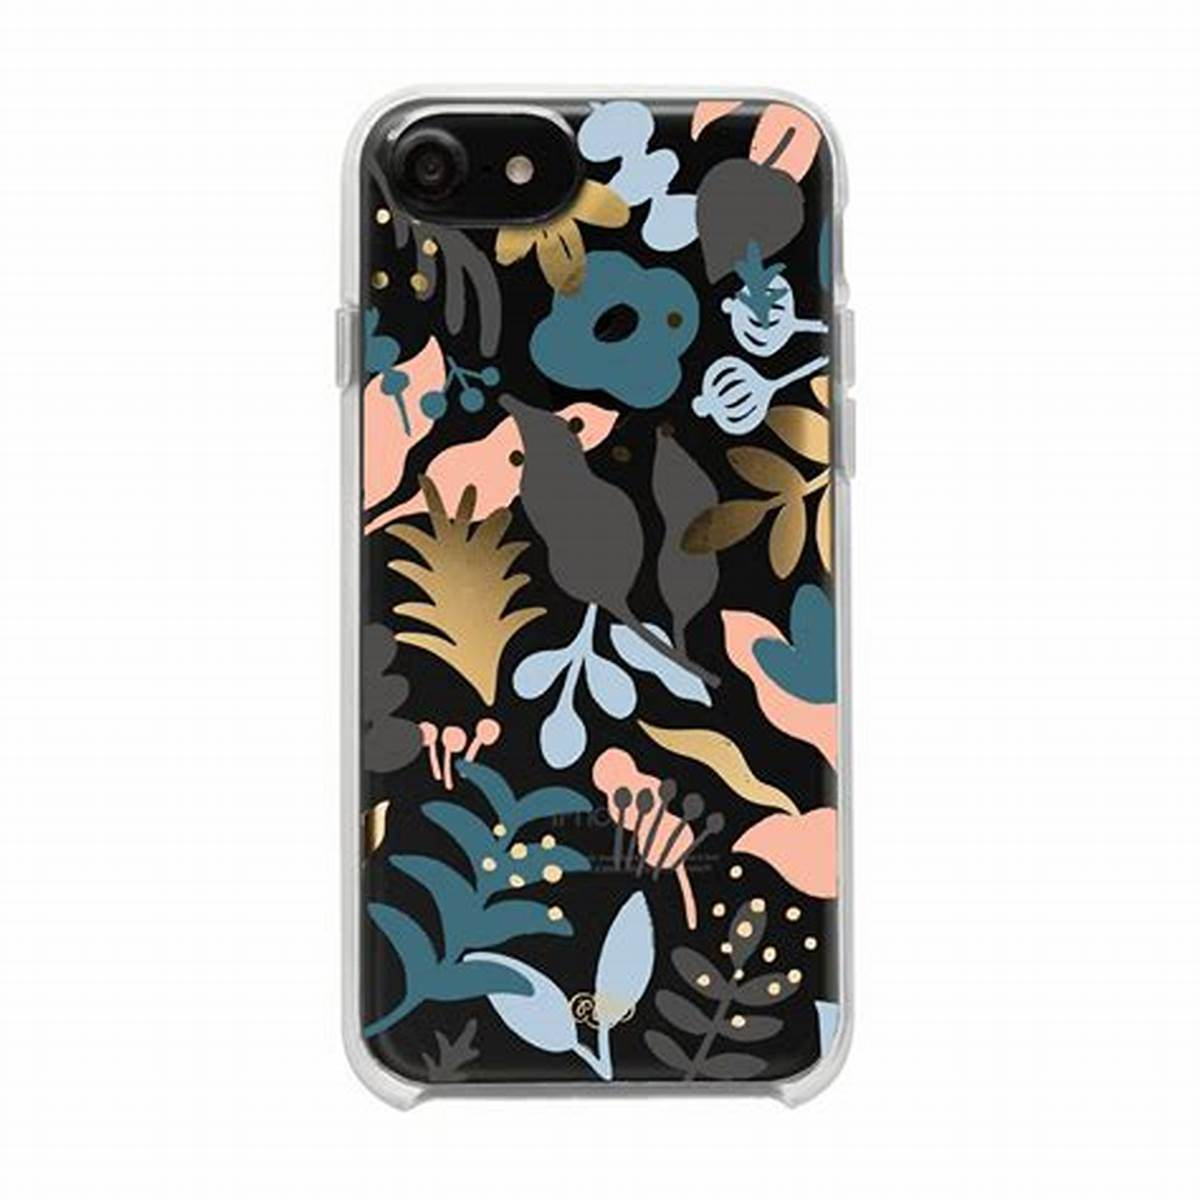 New Cell Phone Accessories 3D TPU Phone Case UV Printing for iPhone X 8 Case Well pictures & photos